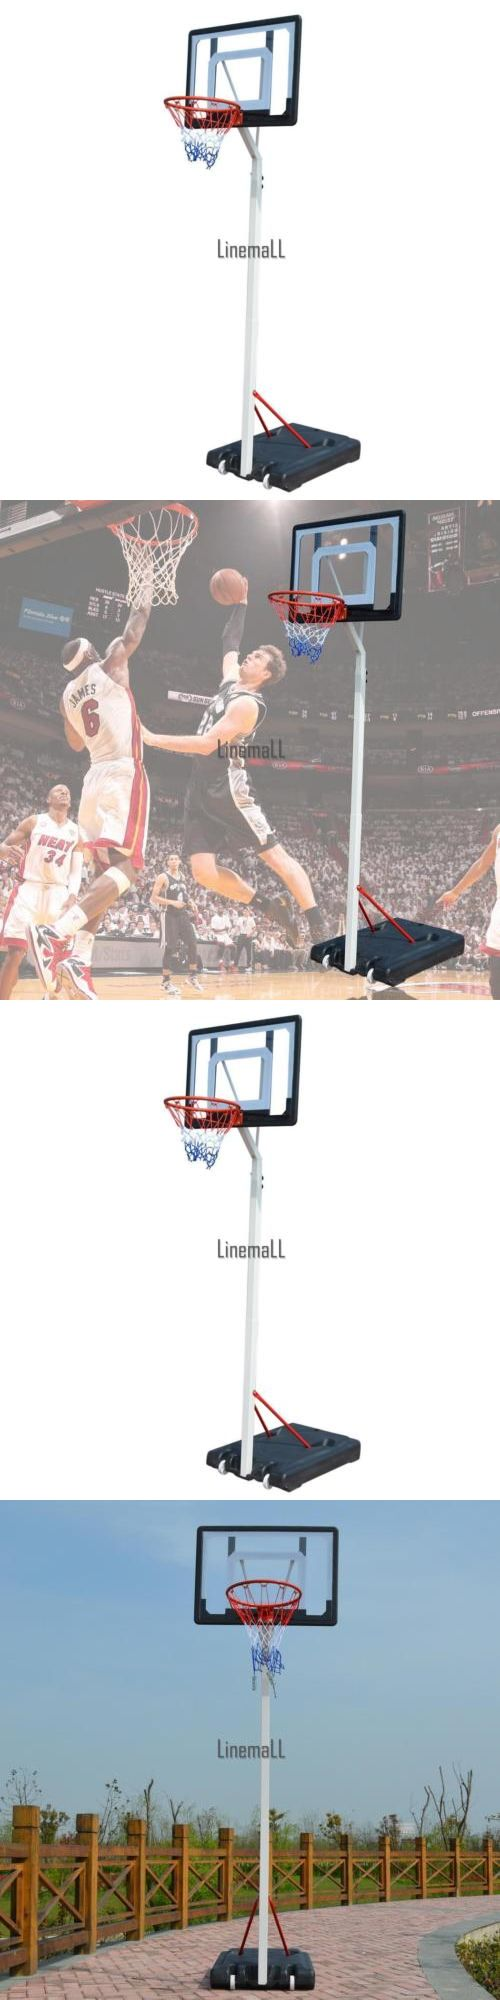 Rims and Nets 158962: Adjustable Portable Height Basketball System Hoop Backboard Rim Sports System -> BUY IT NOW ONLY: $108.75 on eBay!